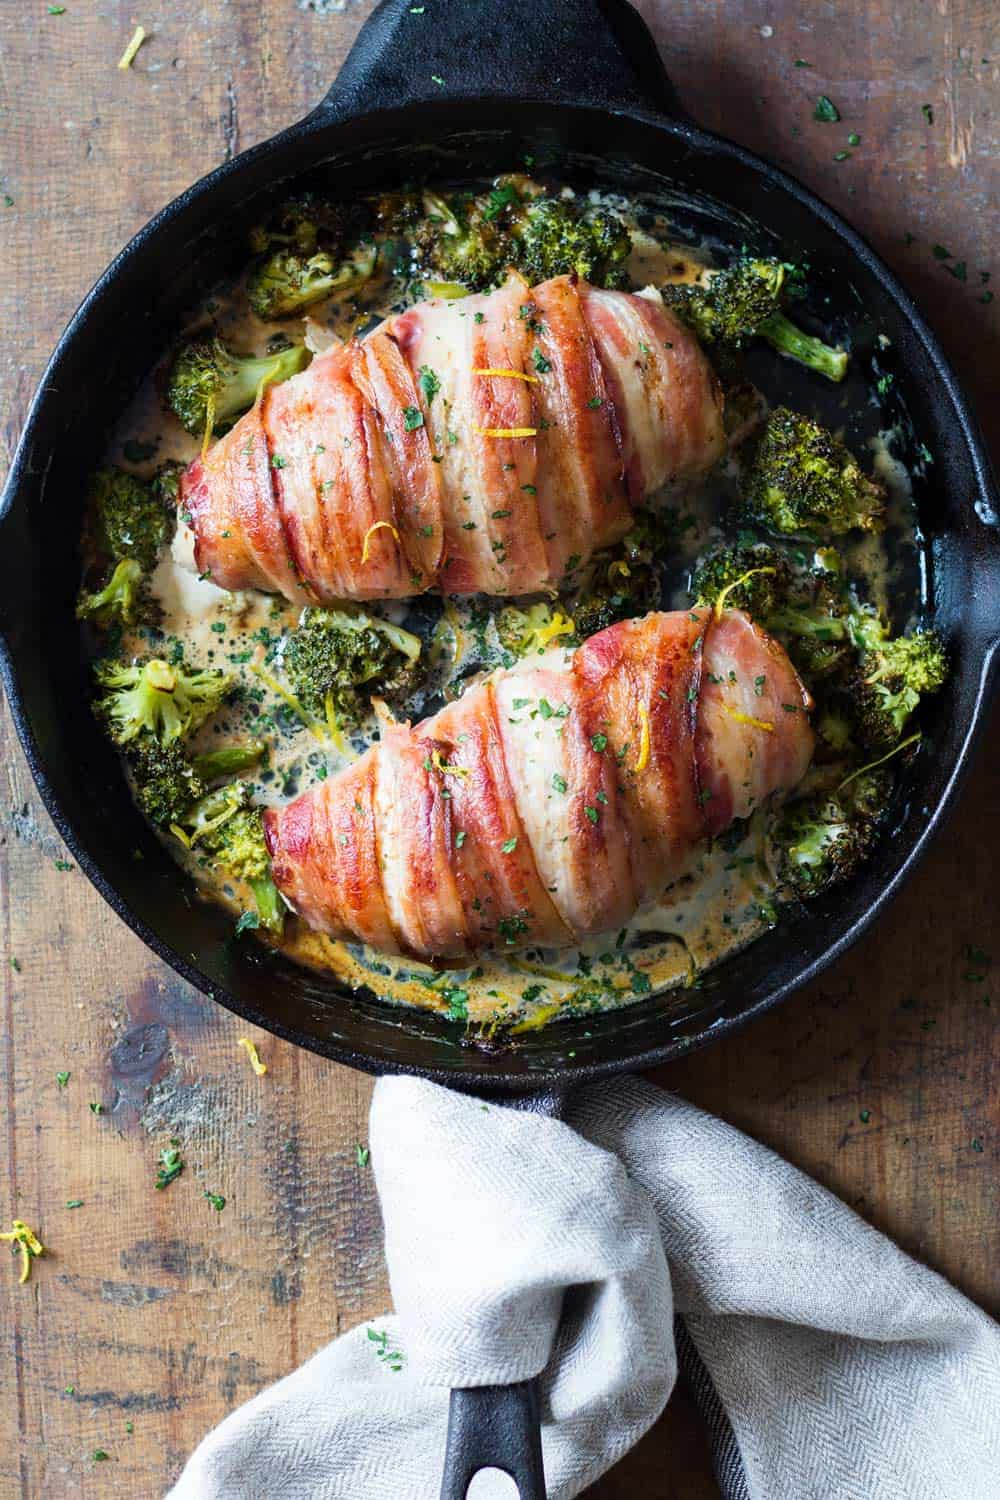 Just thinking about this Bacon Wrapped Chicken Breast produces an angelical ahhhh and floods everything in font of my eyes in bright light.